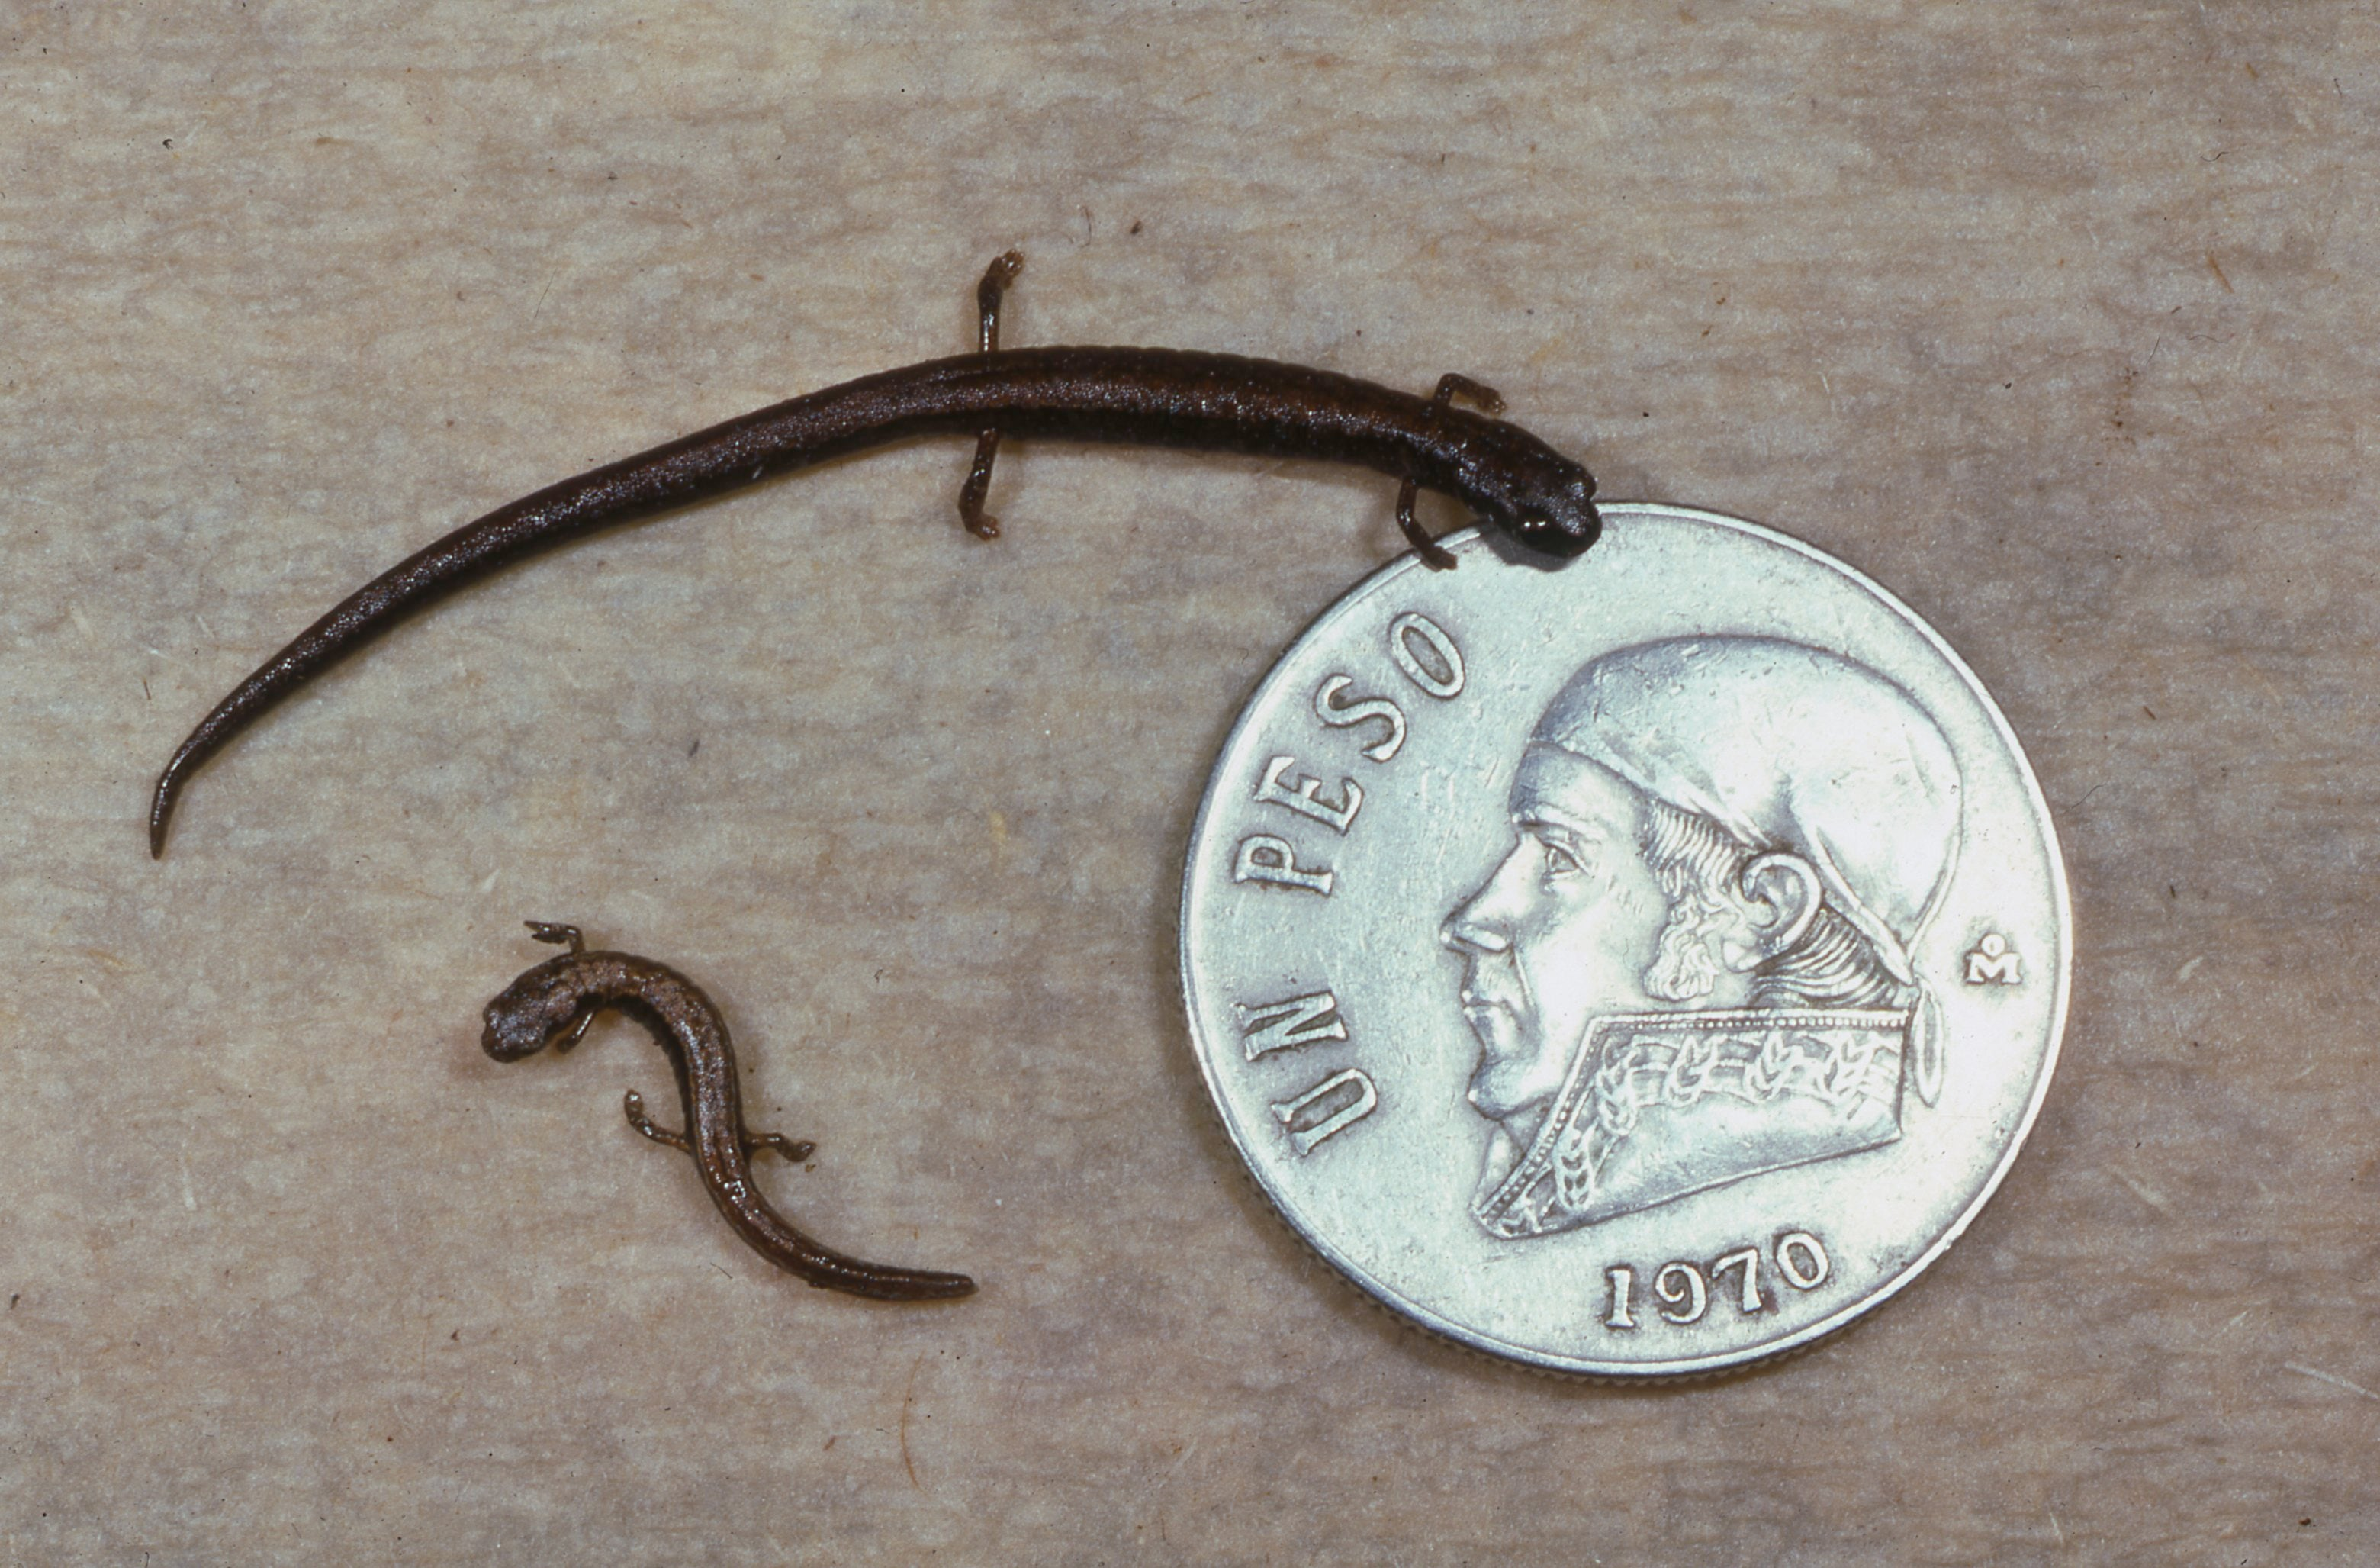 Scientists Just Discovered Three Adorably Tiny New Salamanders